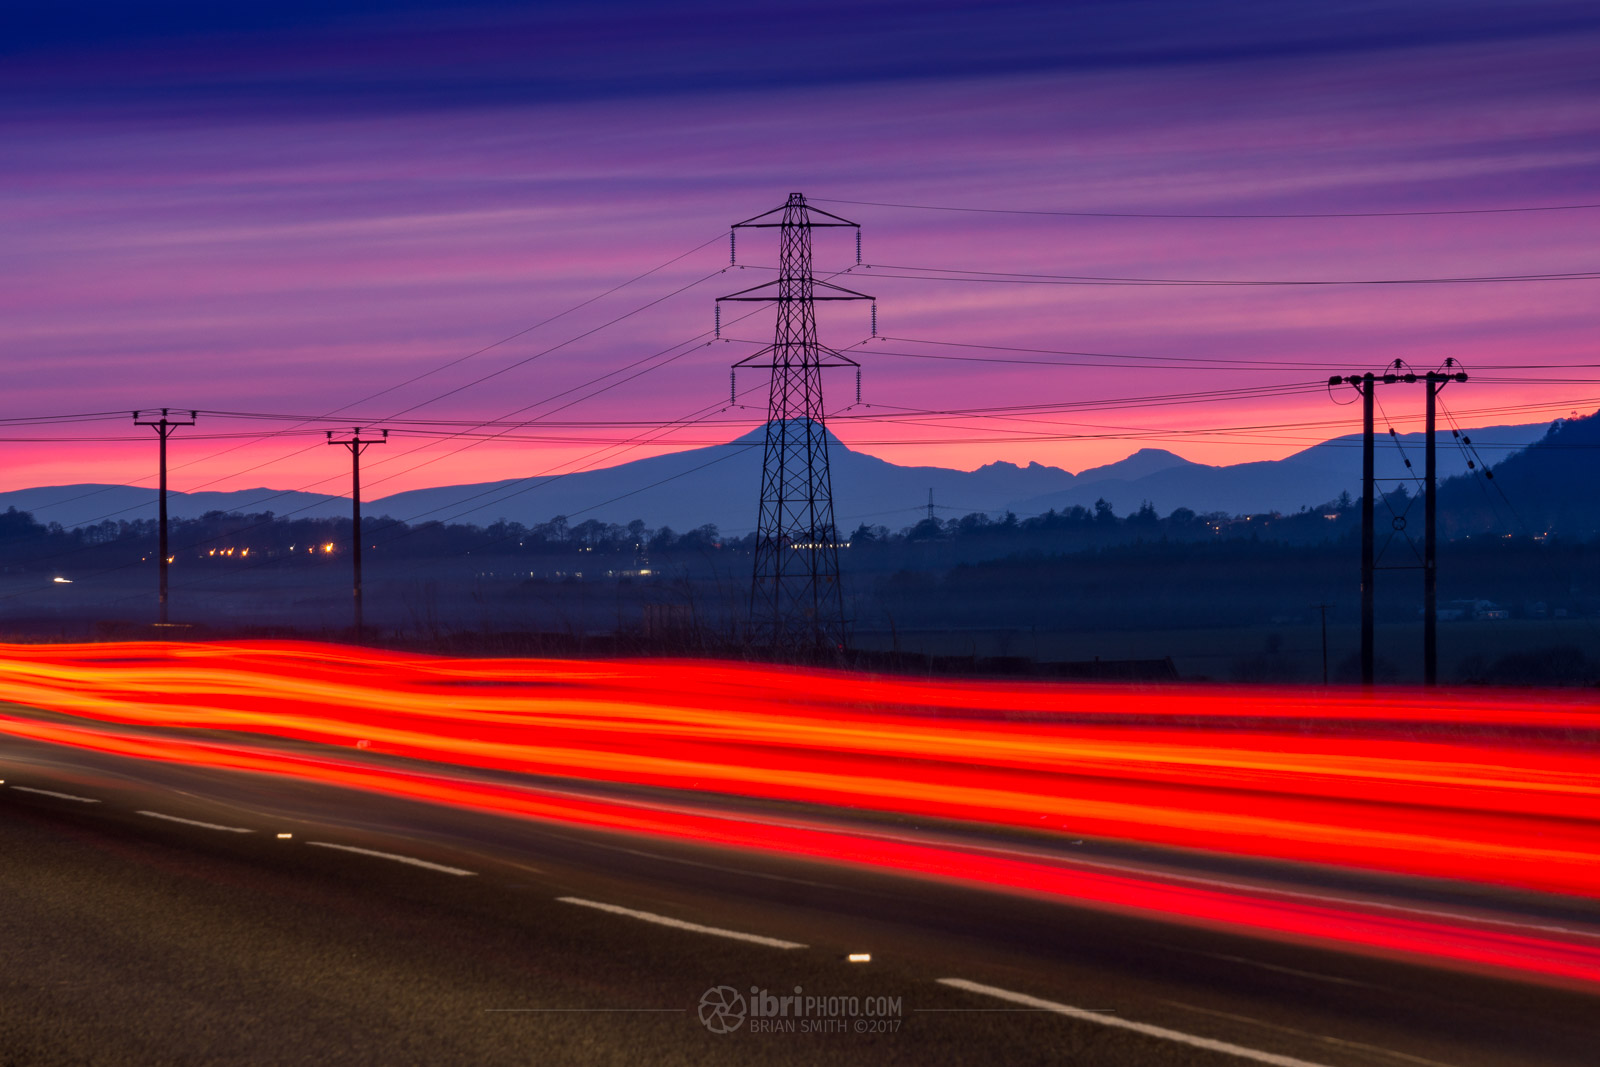 Light Trails and a pink sky, about 35 minutes after sunset,from near Tullibody, Clackmannanshire.Sony Nex 7 - Sony E 55-210mm f4.5-6.3 OSS - 110mm - 10sec - f4.5 - ISO100